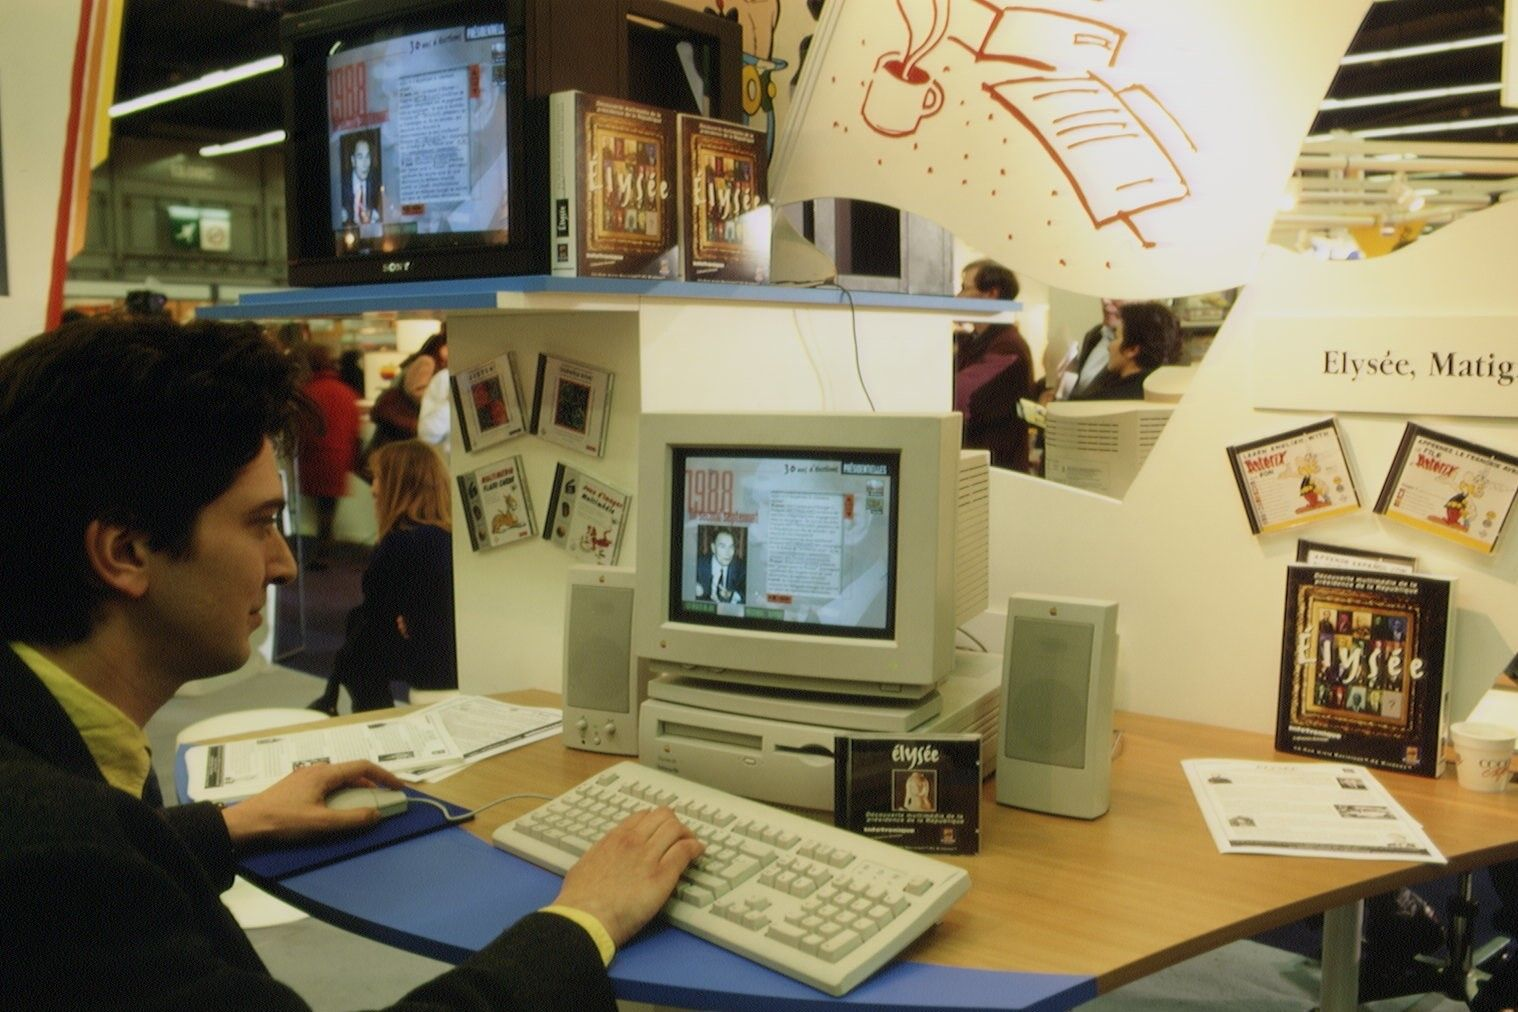 CD-ROM publishers were presenting their work during the Paris Book Fair in 1995.